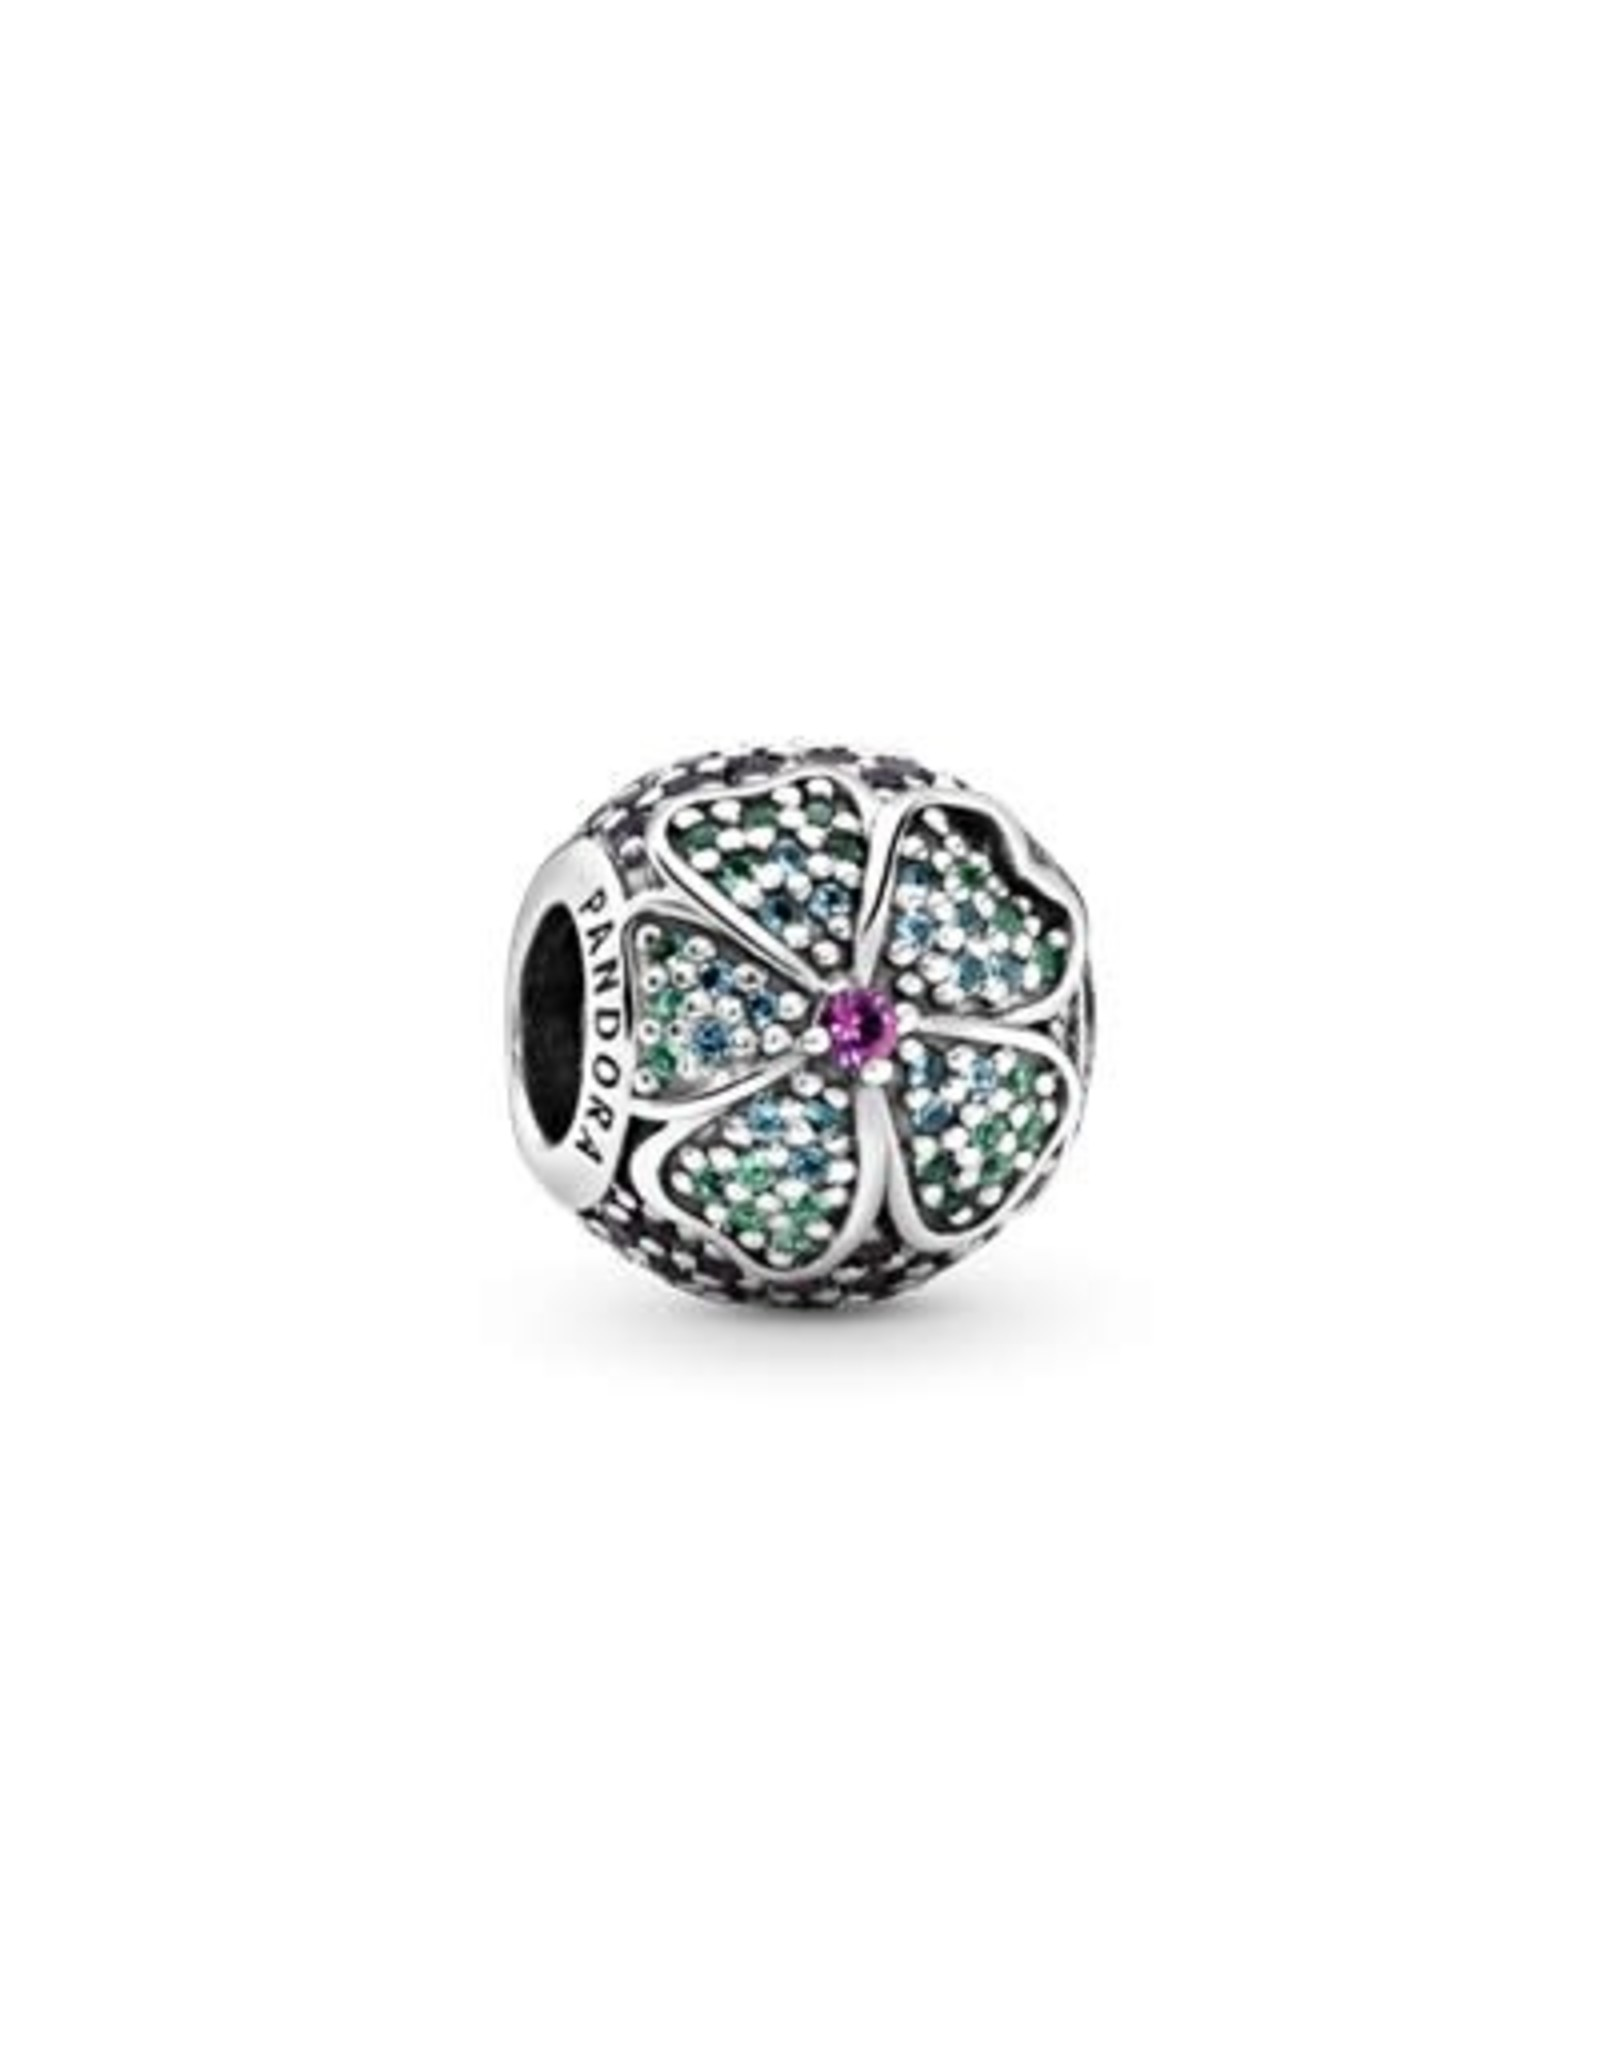 Pandora Pandora Charm, Glorious Blooms, Multi-Coloured Crystals